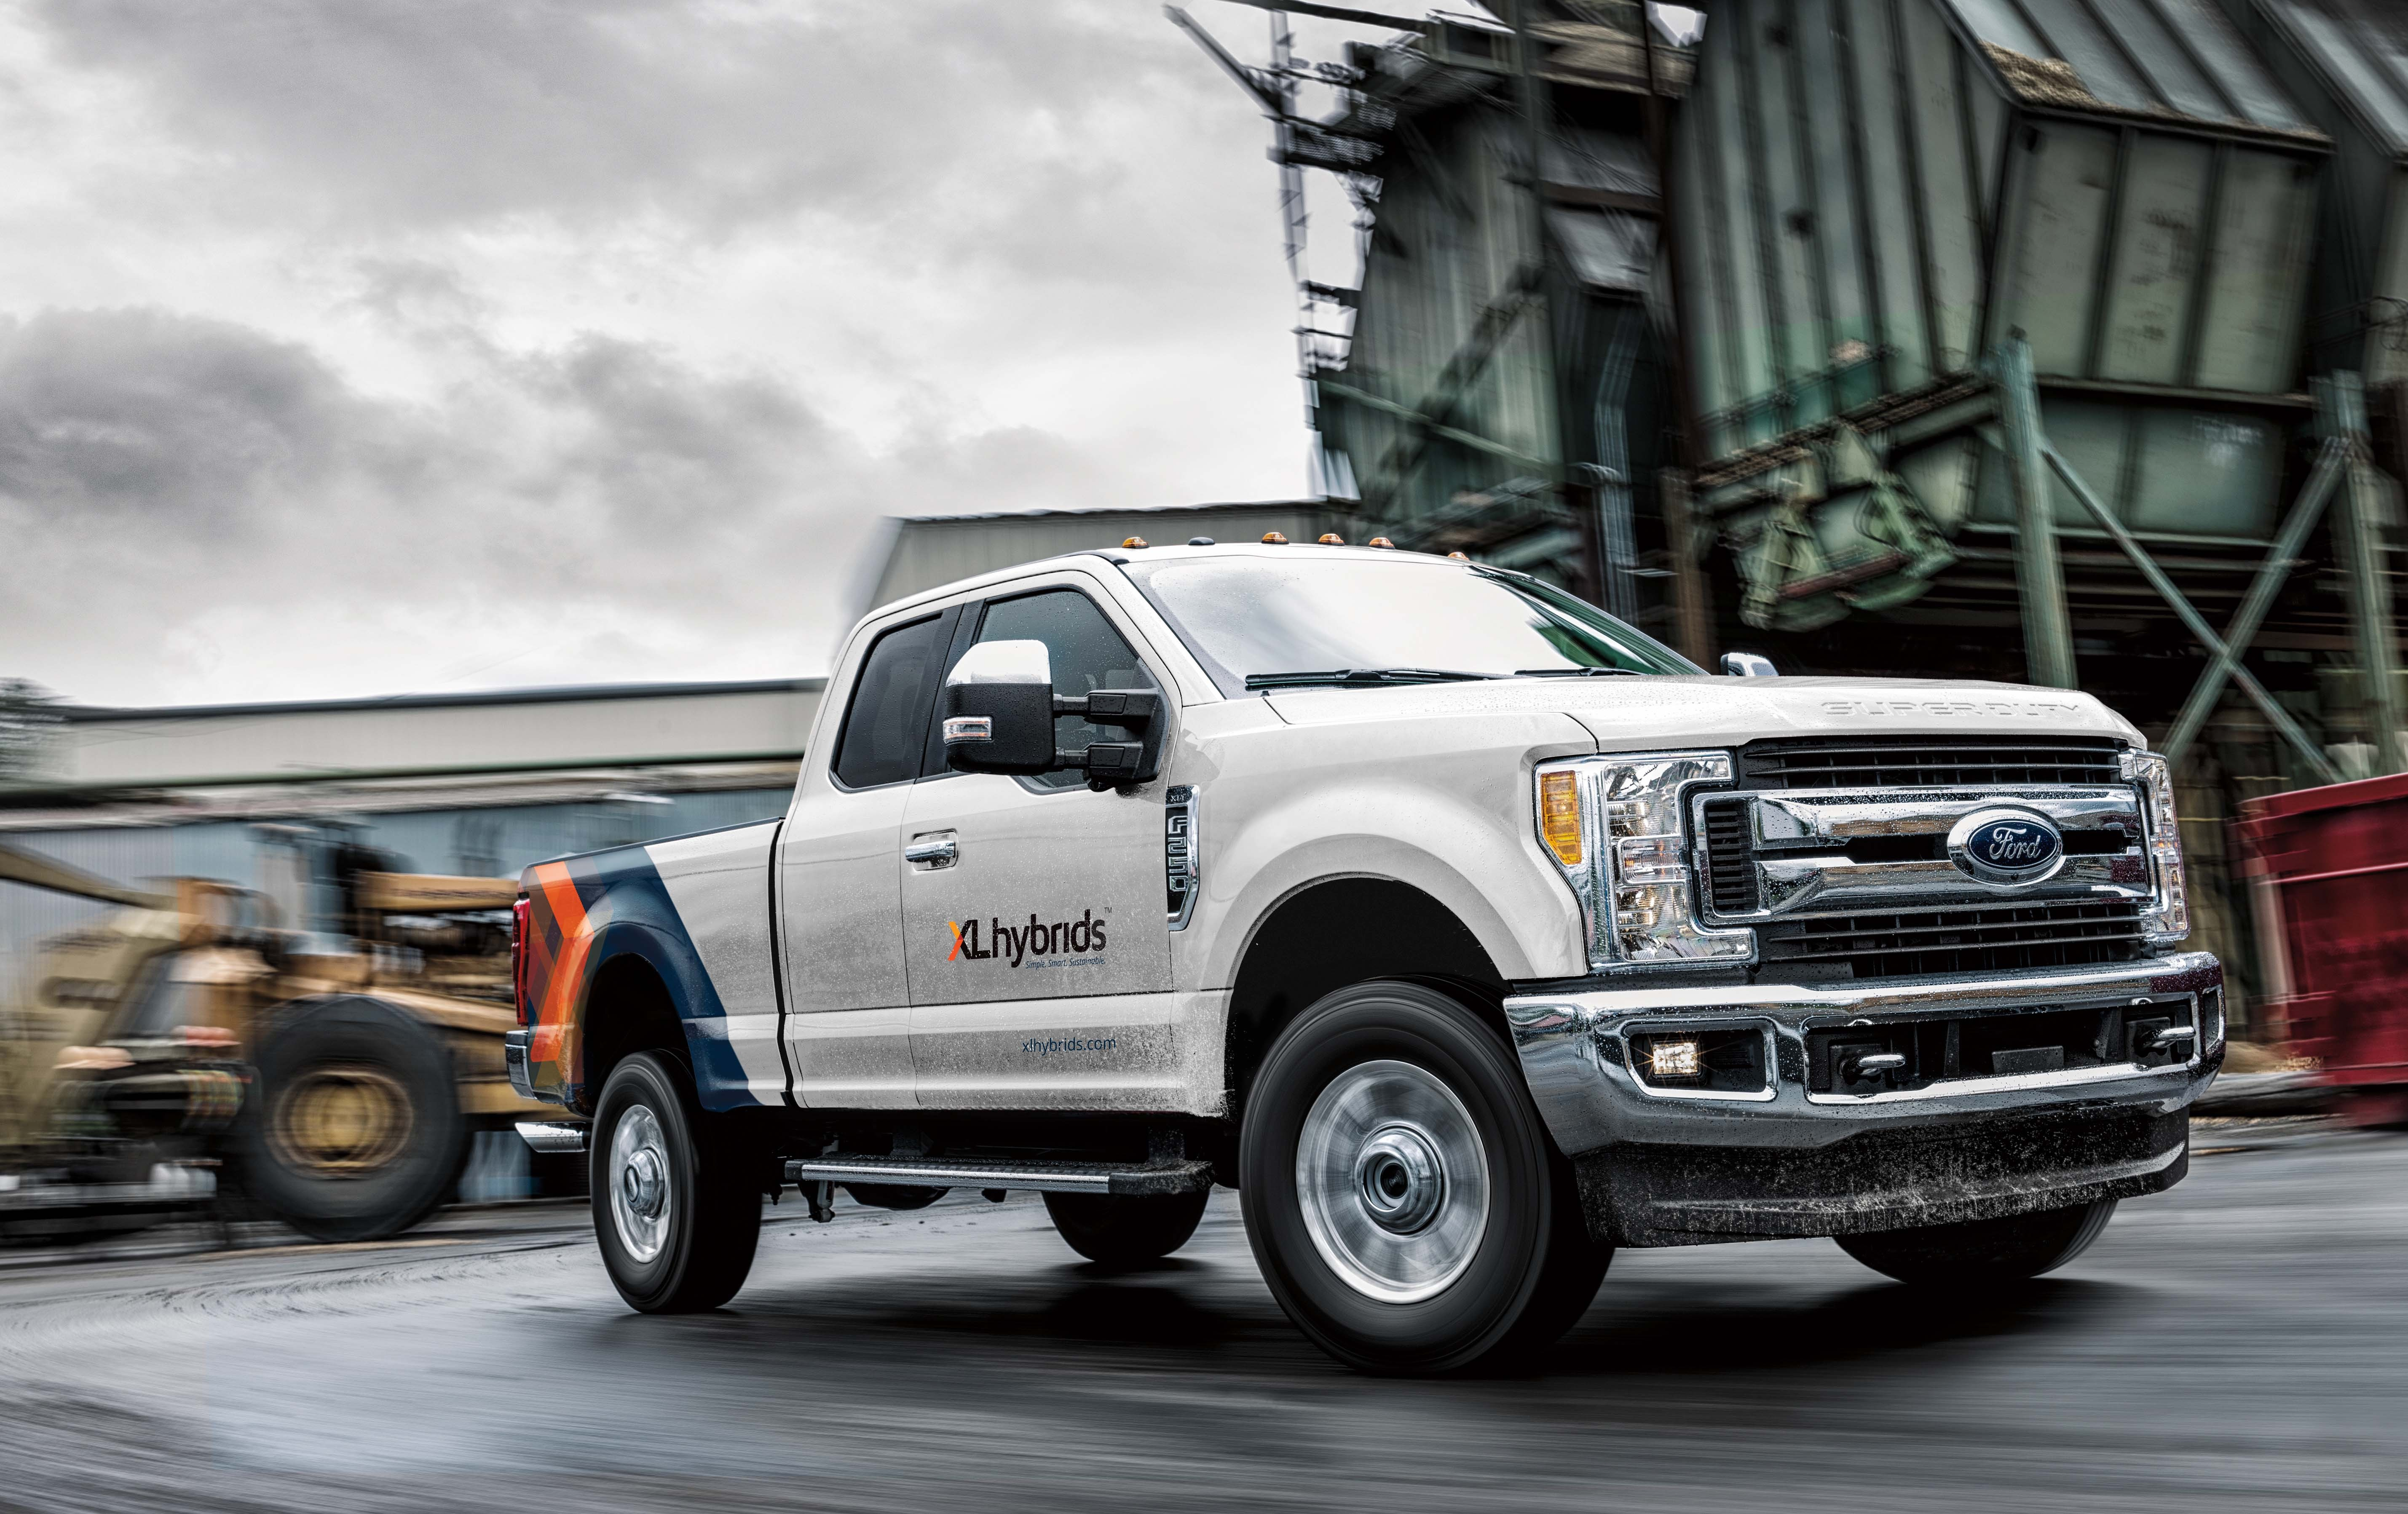 xl hybrids unveils first hybrid electric ford f 250. Black Bedroom Furniture Sets. Home Design Ideas